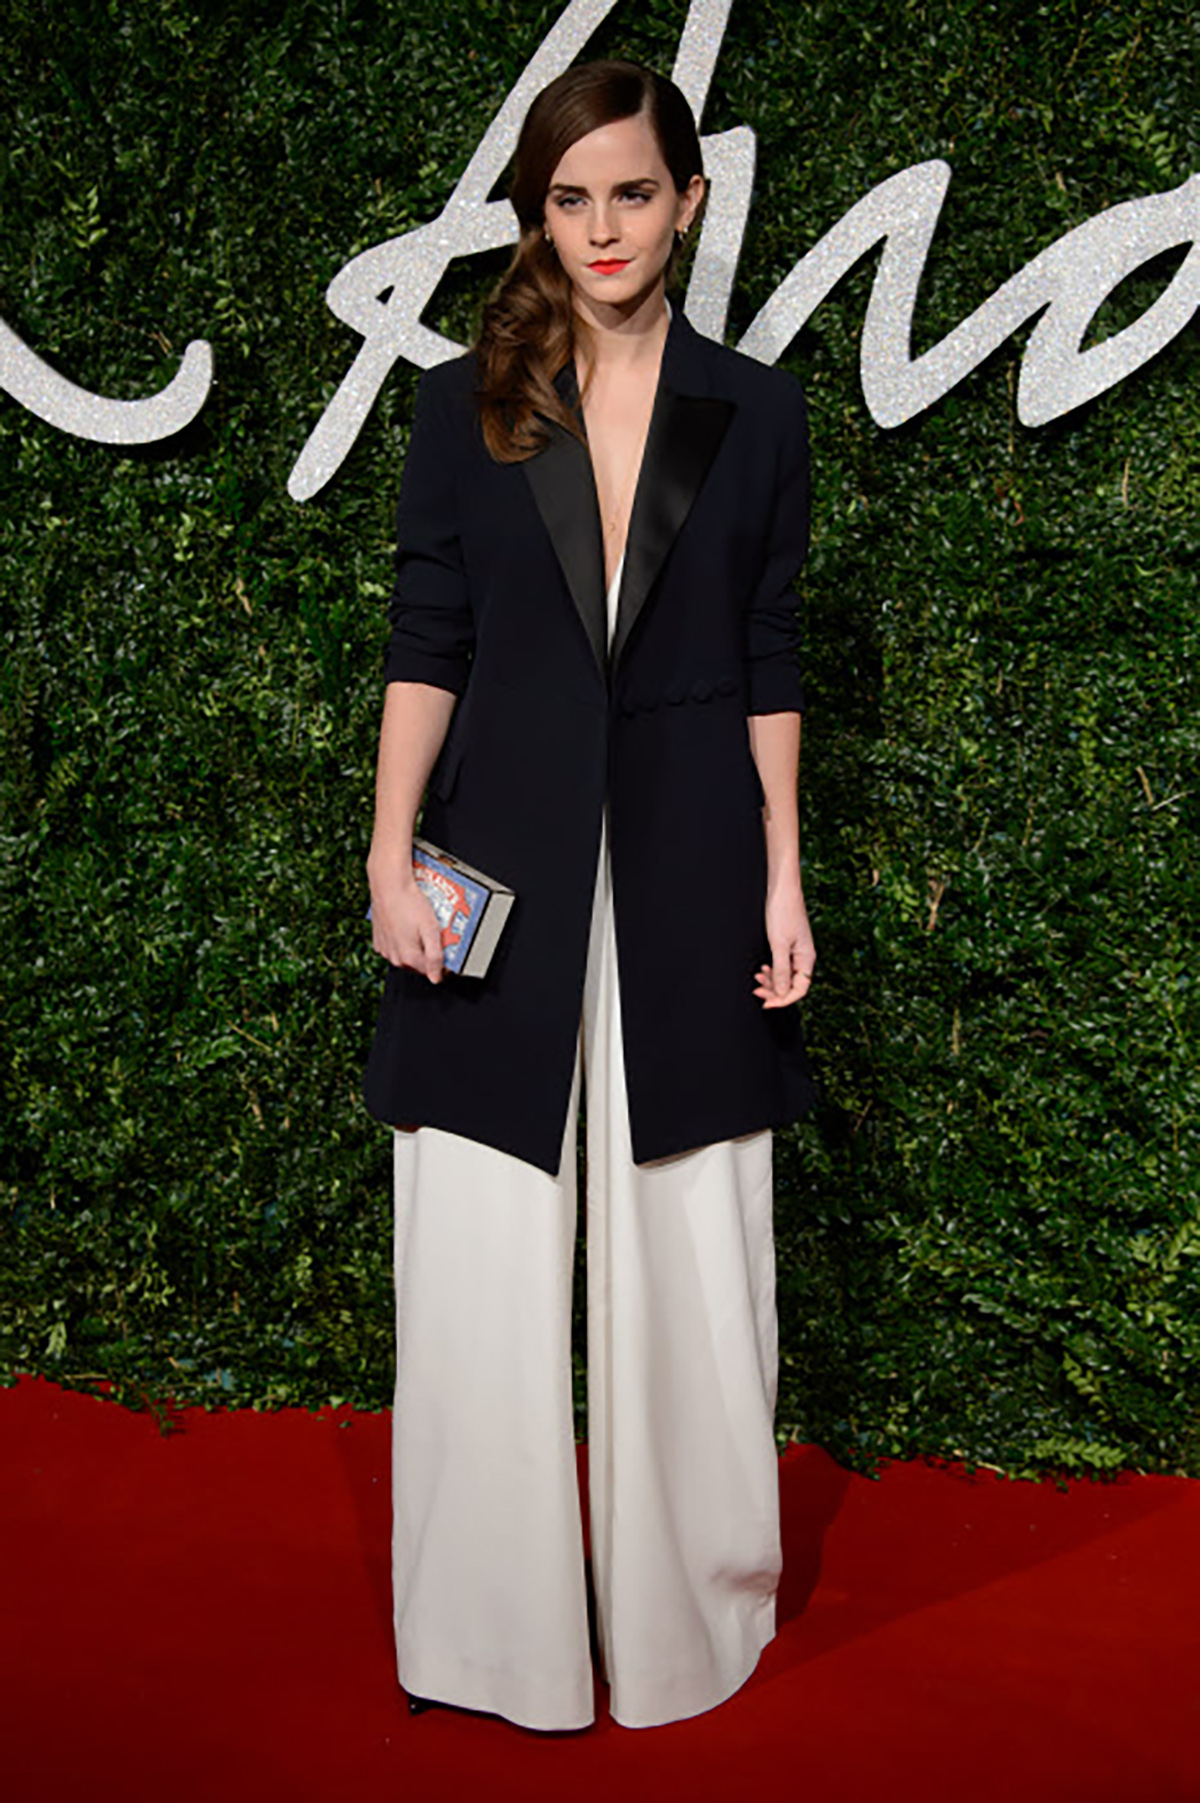 14. Actress Emma Watson at the British Fashion Awards 2014. Blanco y negro